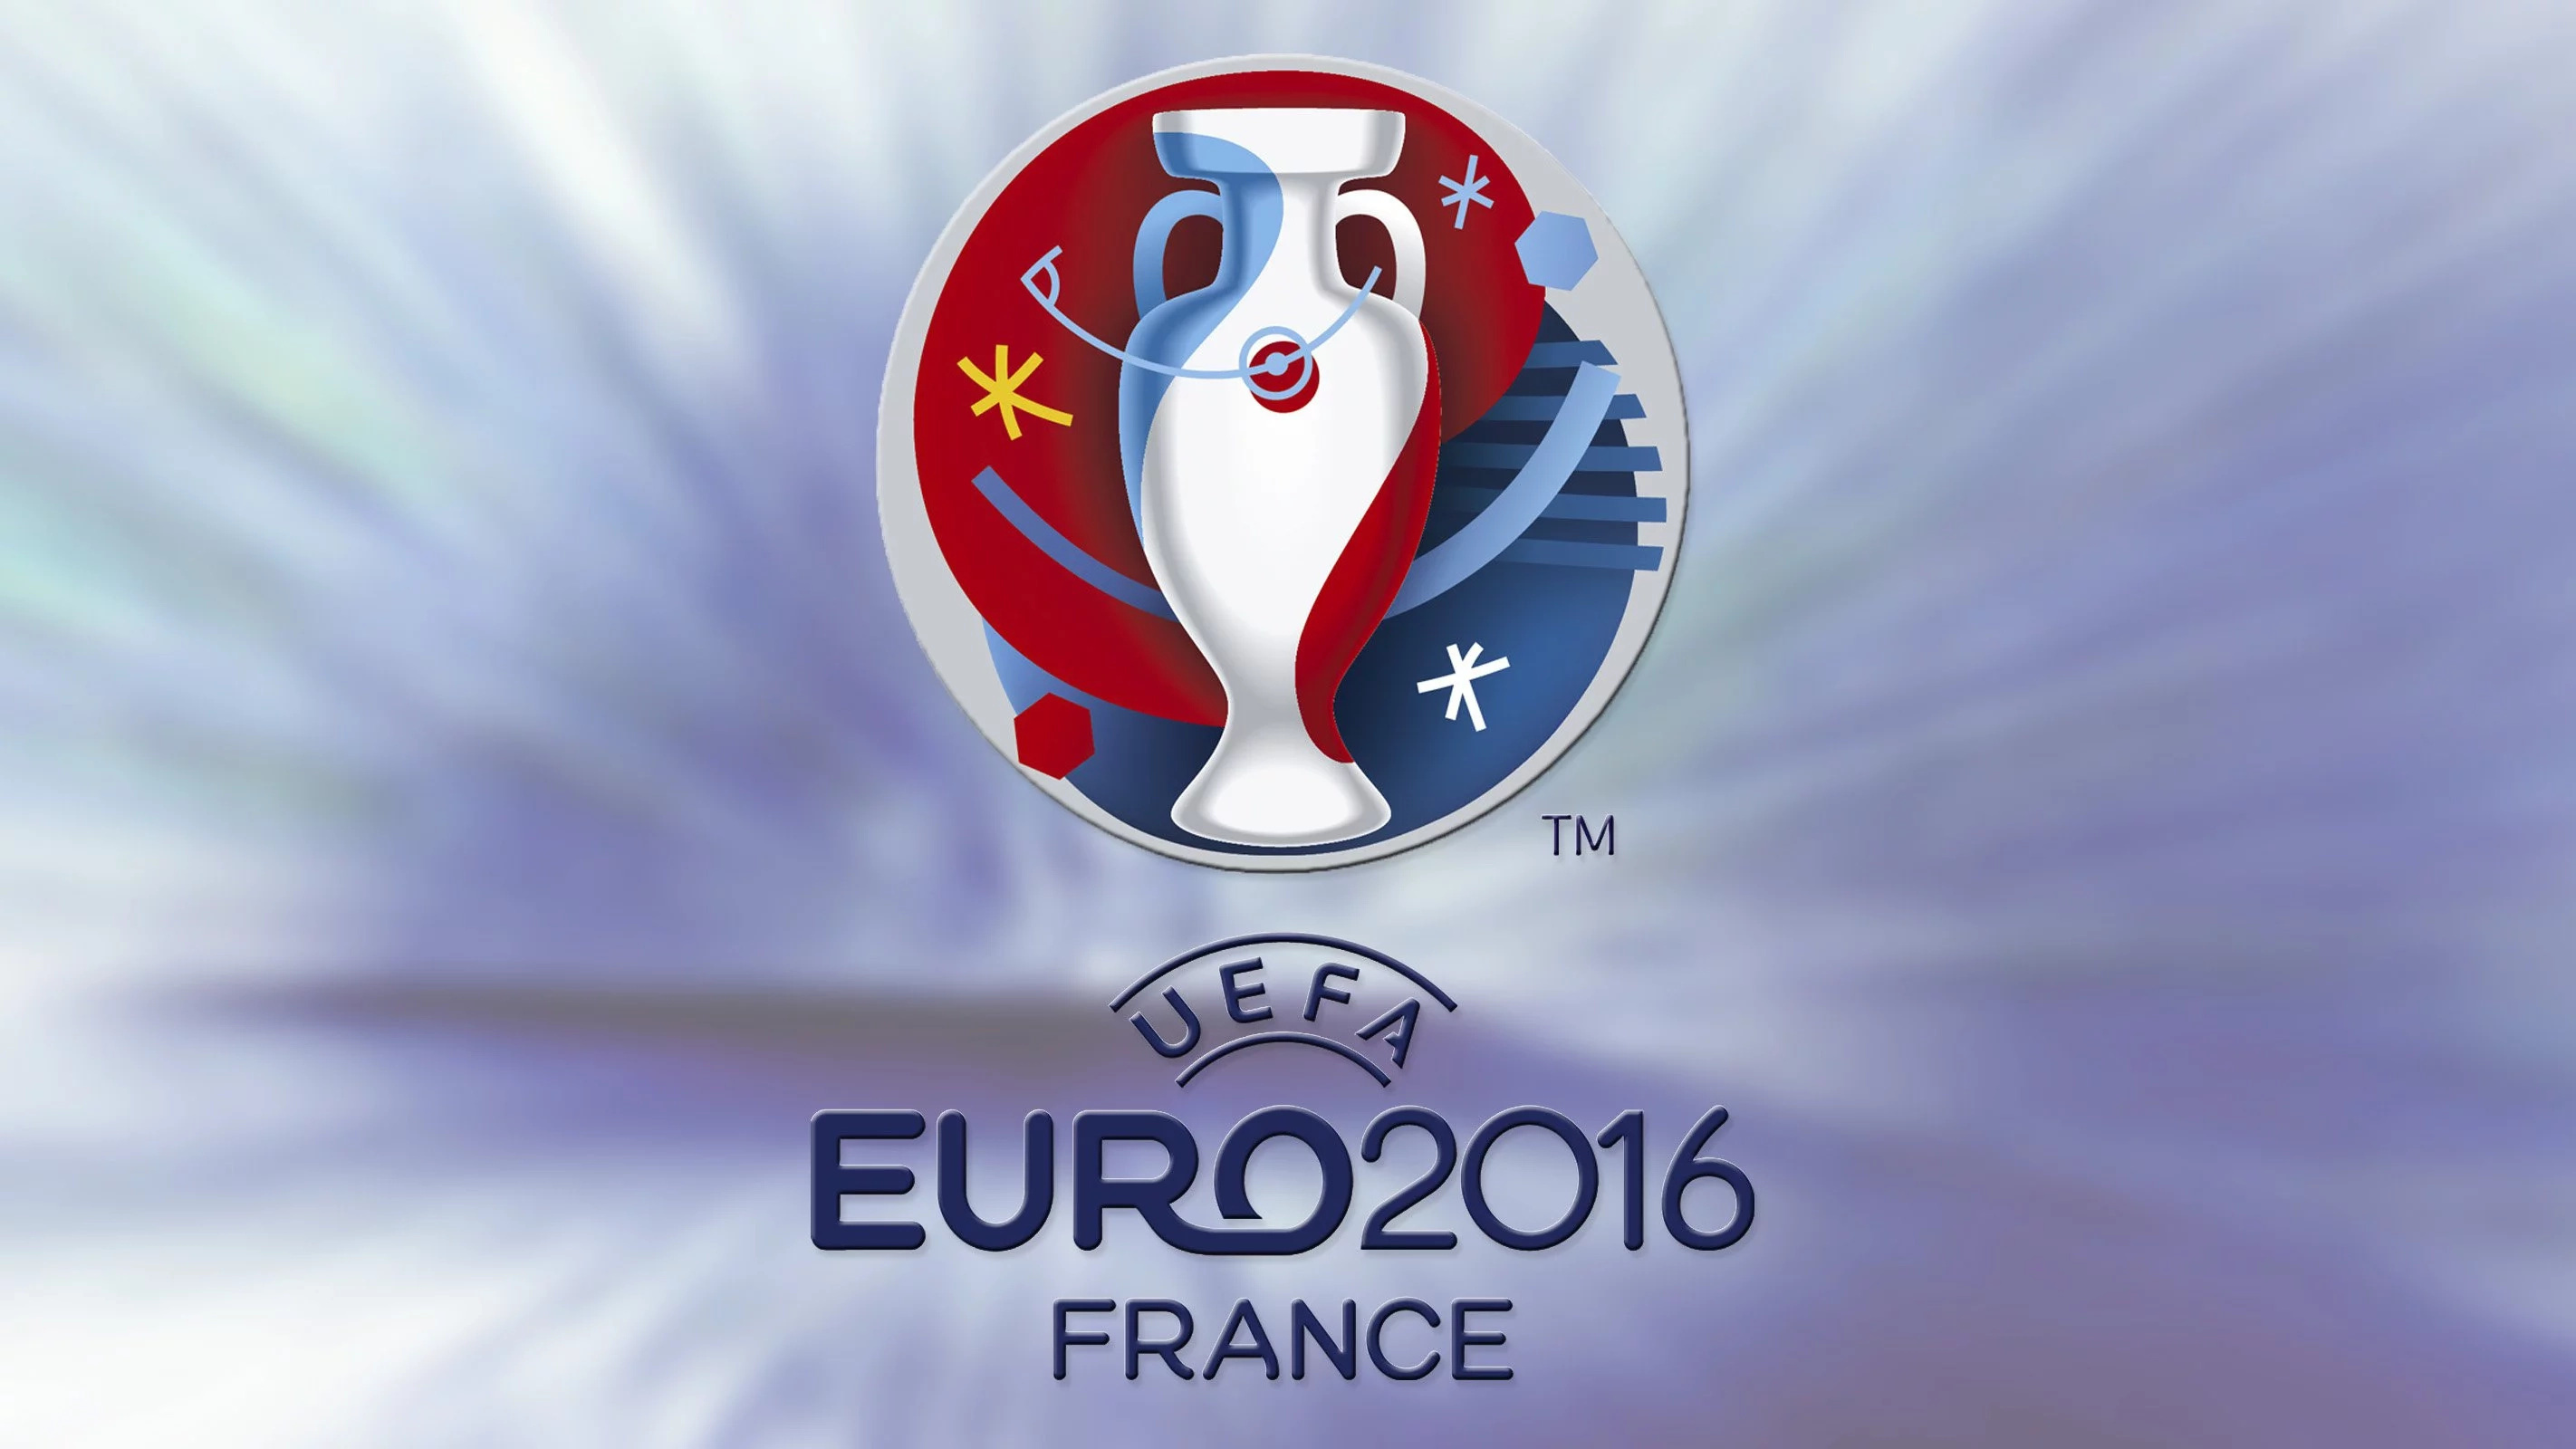 Uefa guide on how to pronounce Euro 2016 players names